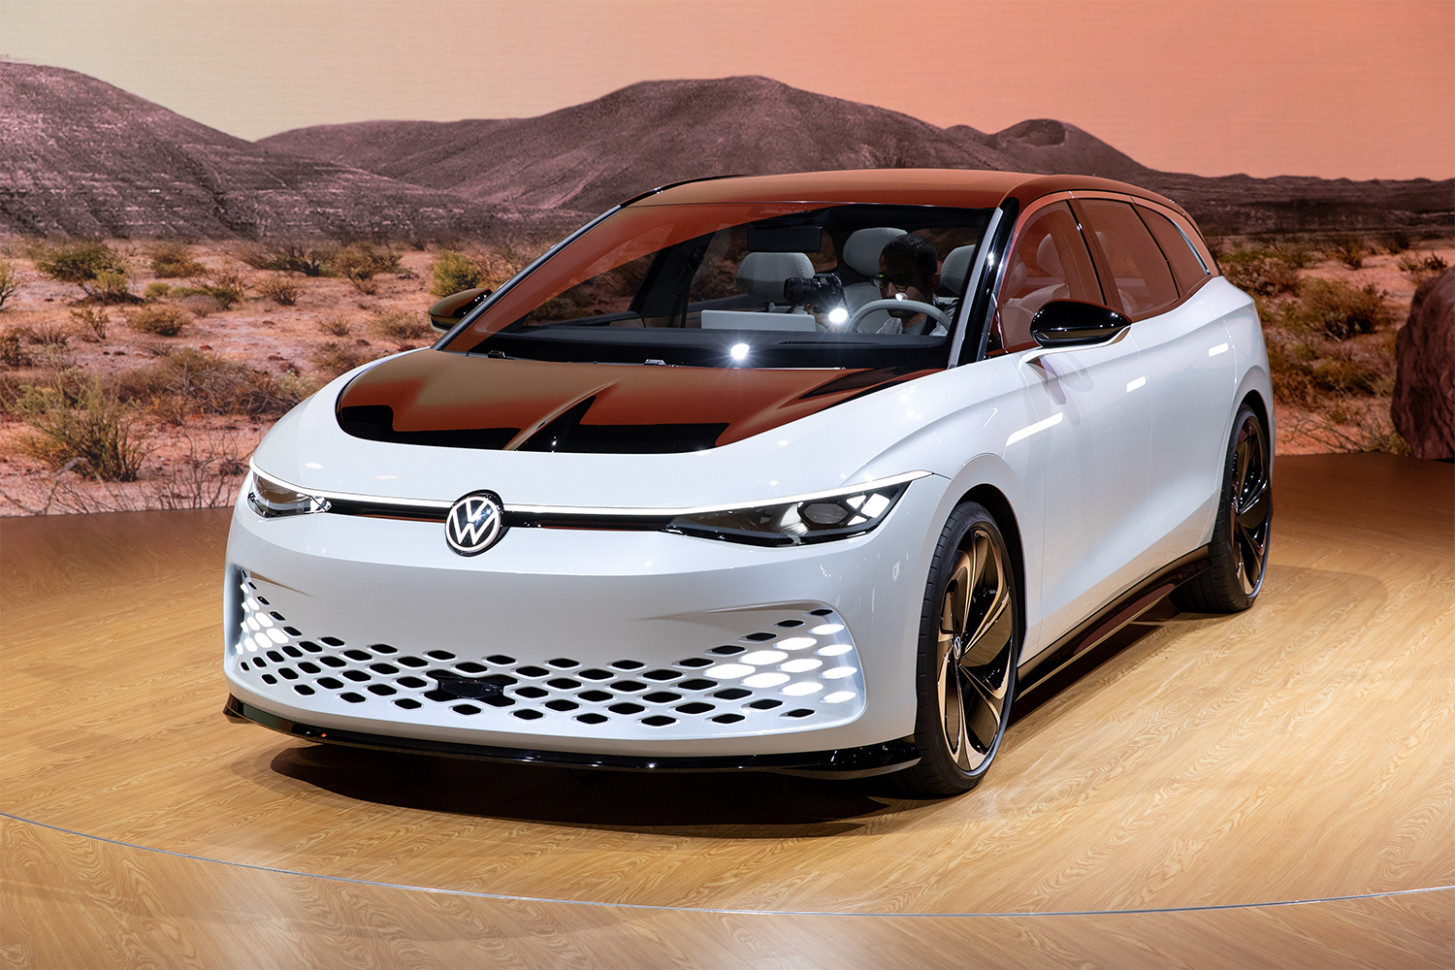 Volkswagen Promises 8 New Models in 8. Wait, What? - InsideHook